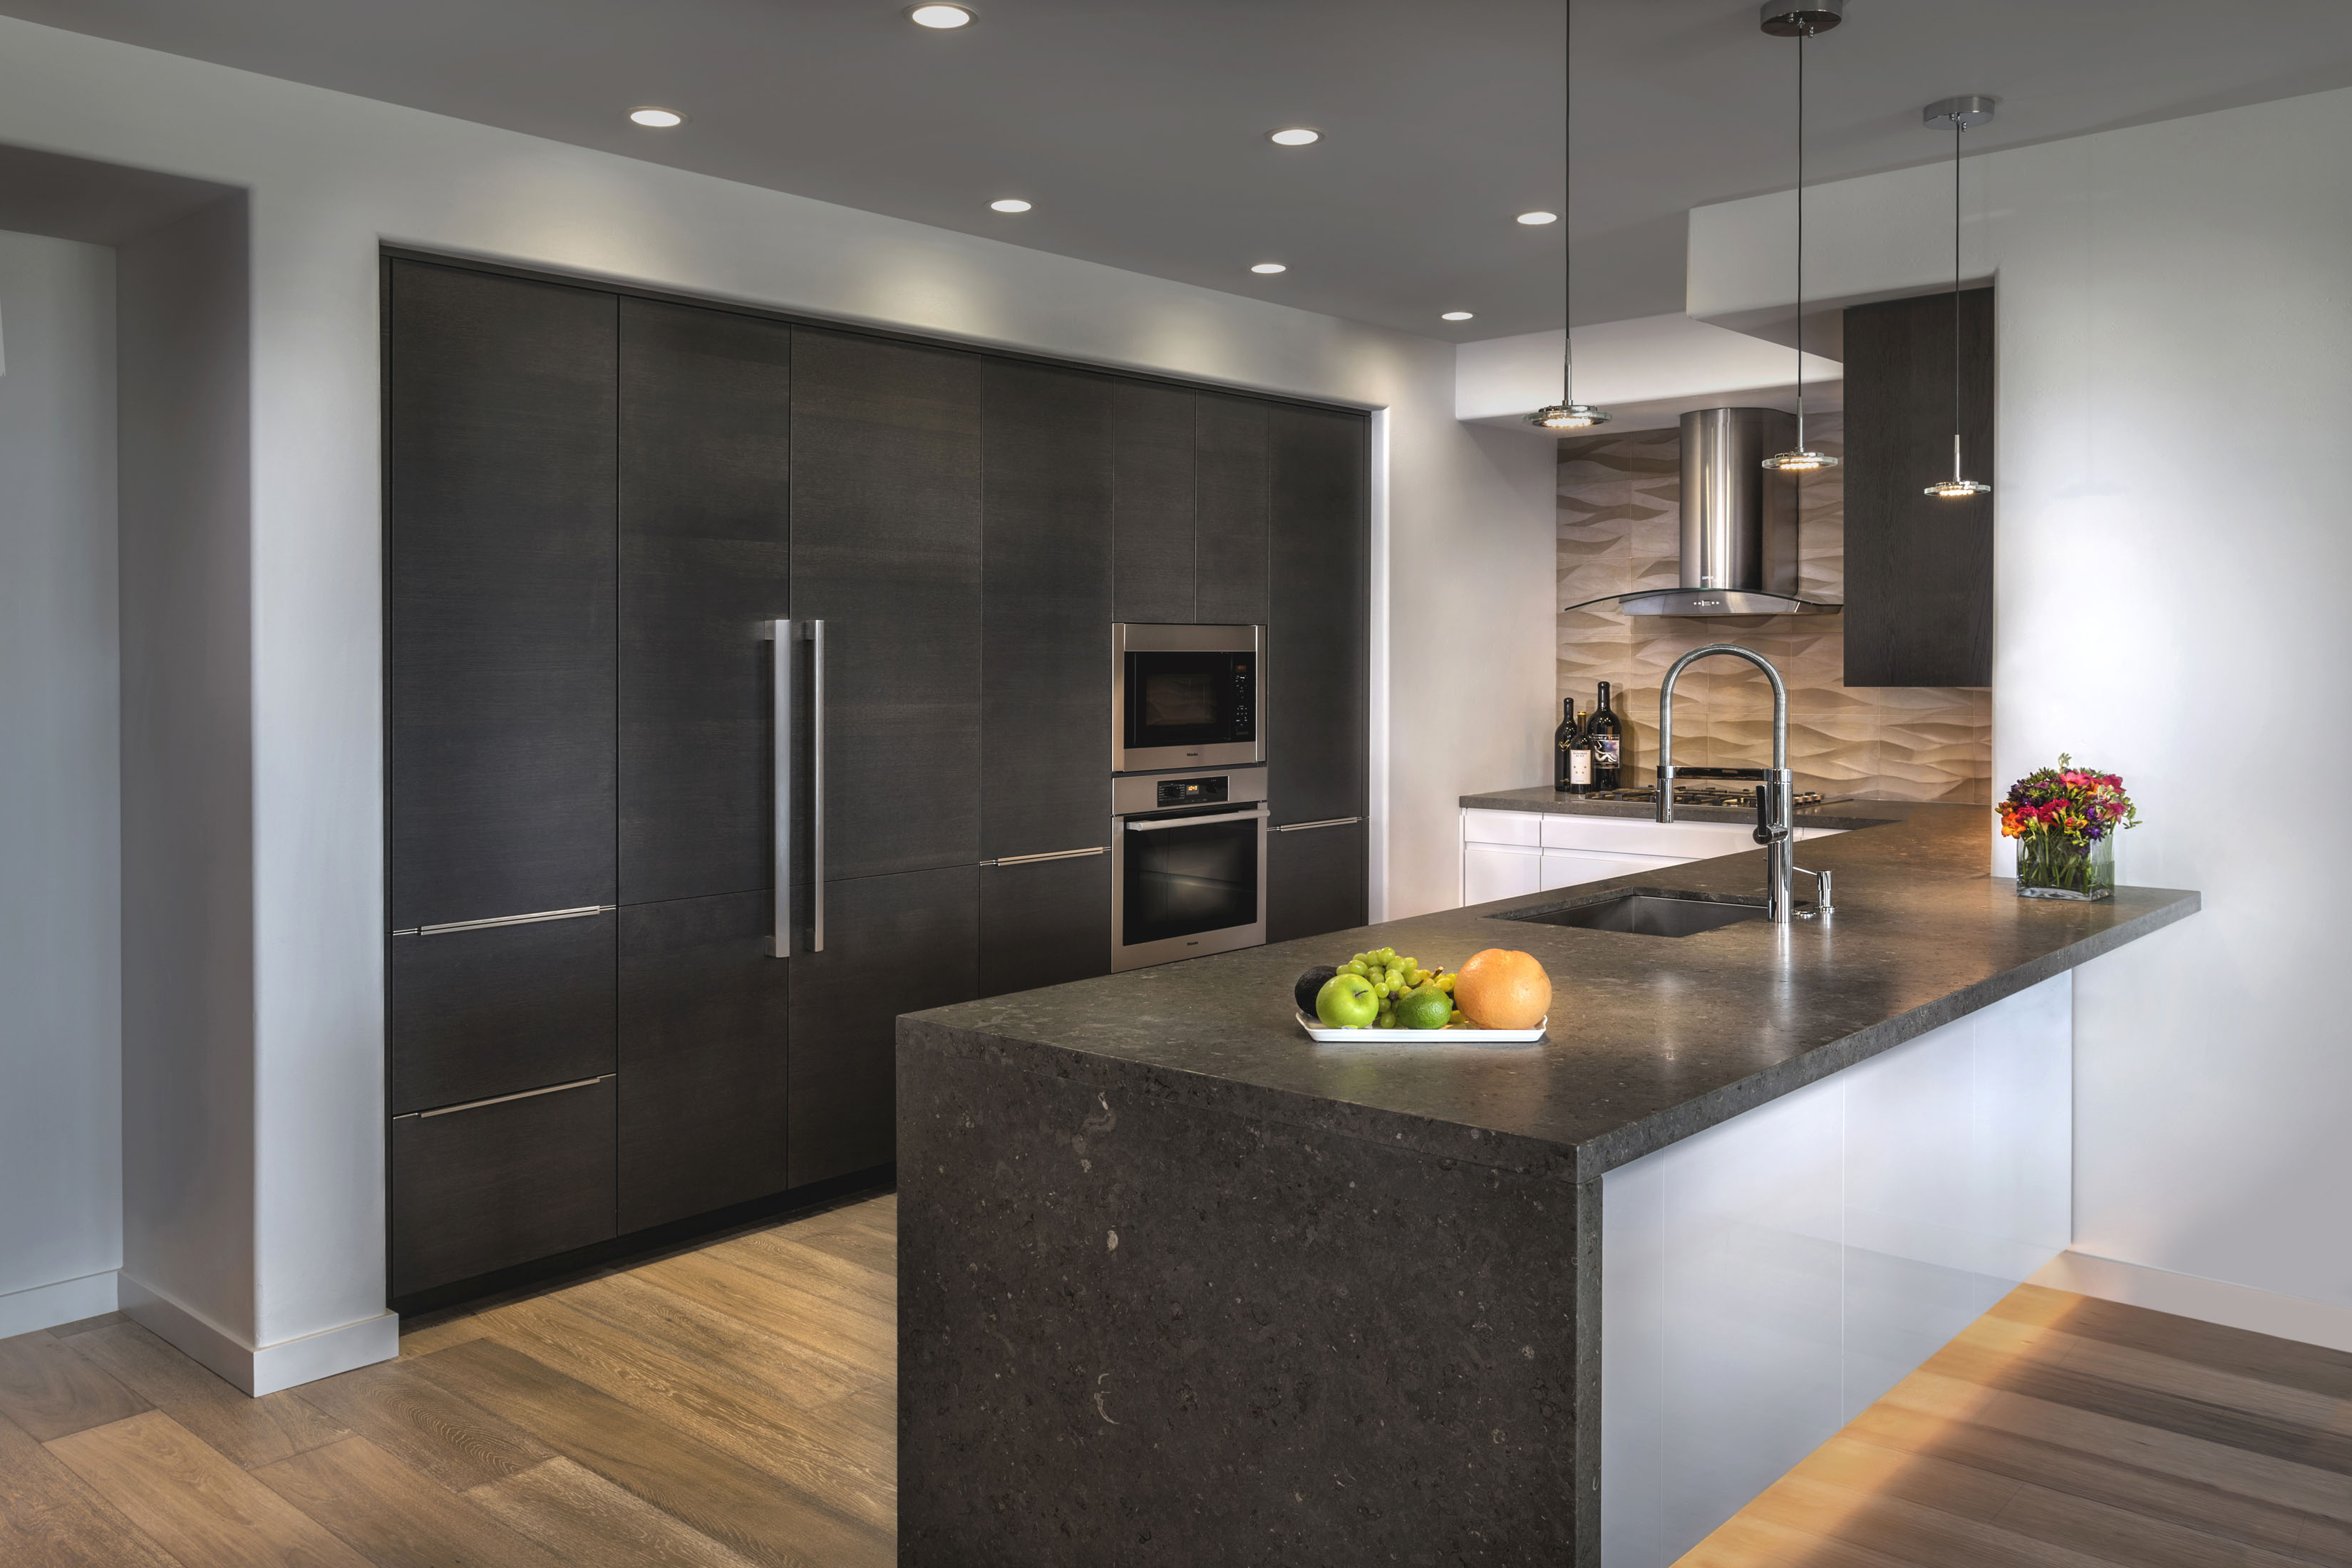 rational high gloss lacquer and dark oak cabinetry